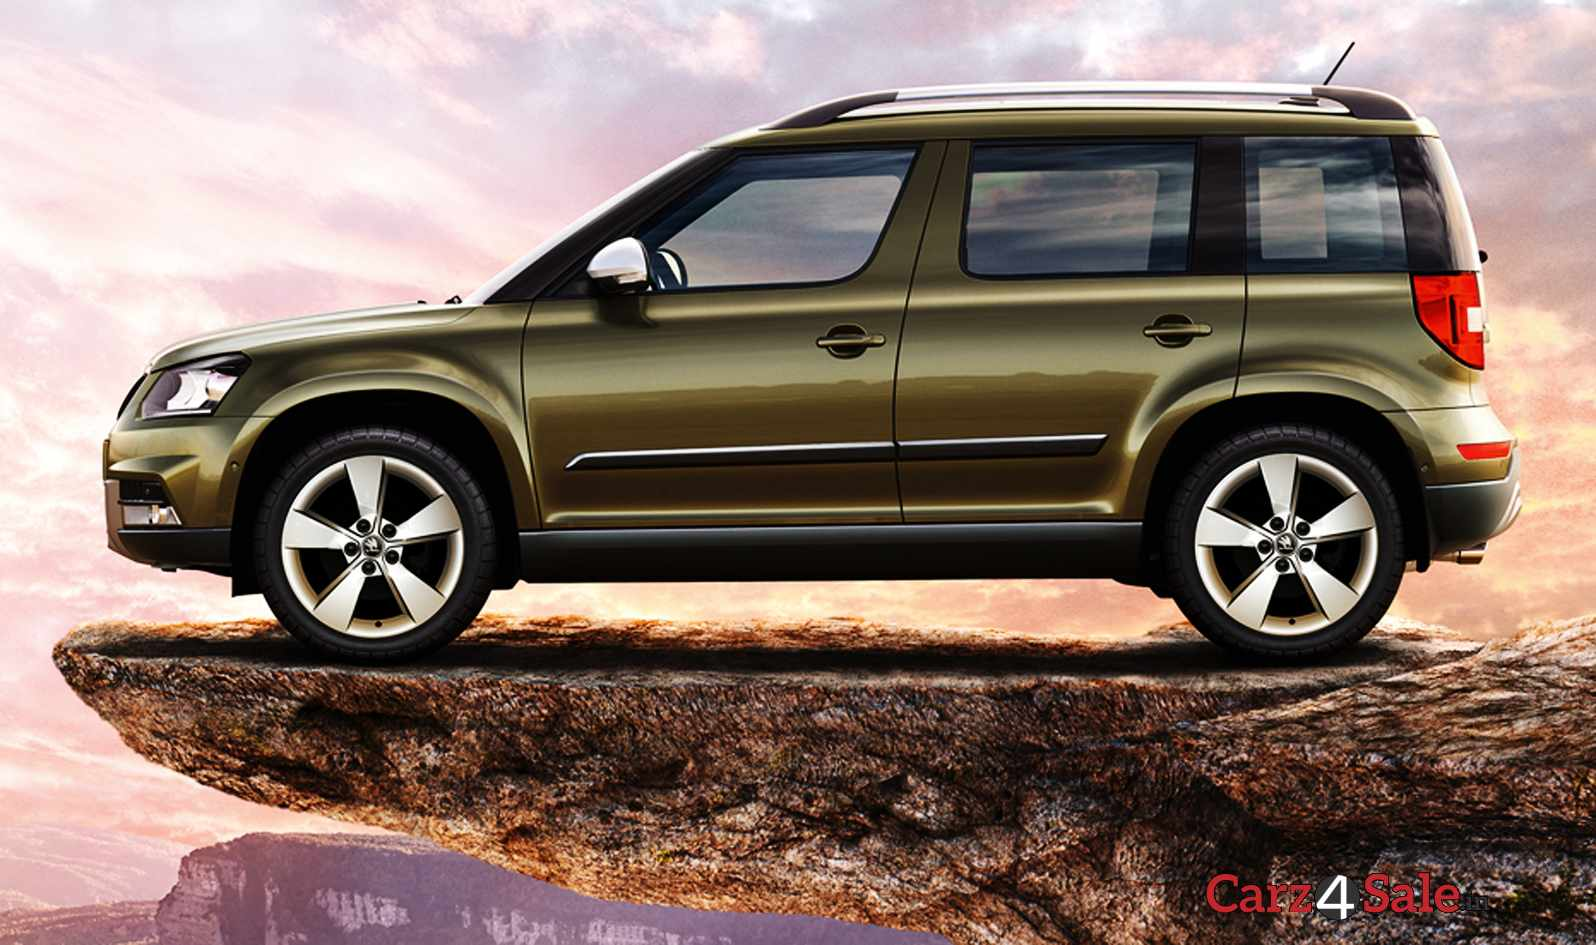 photo 3 skoda yeti elegance 4x4 picture gallery carz4sale. Black Bedroom Furniture Sets. Home Design Ideas